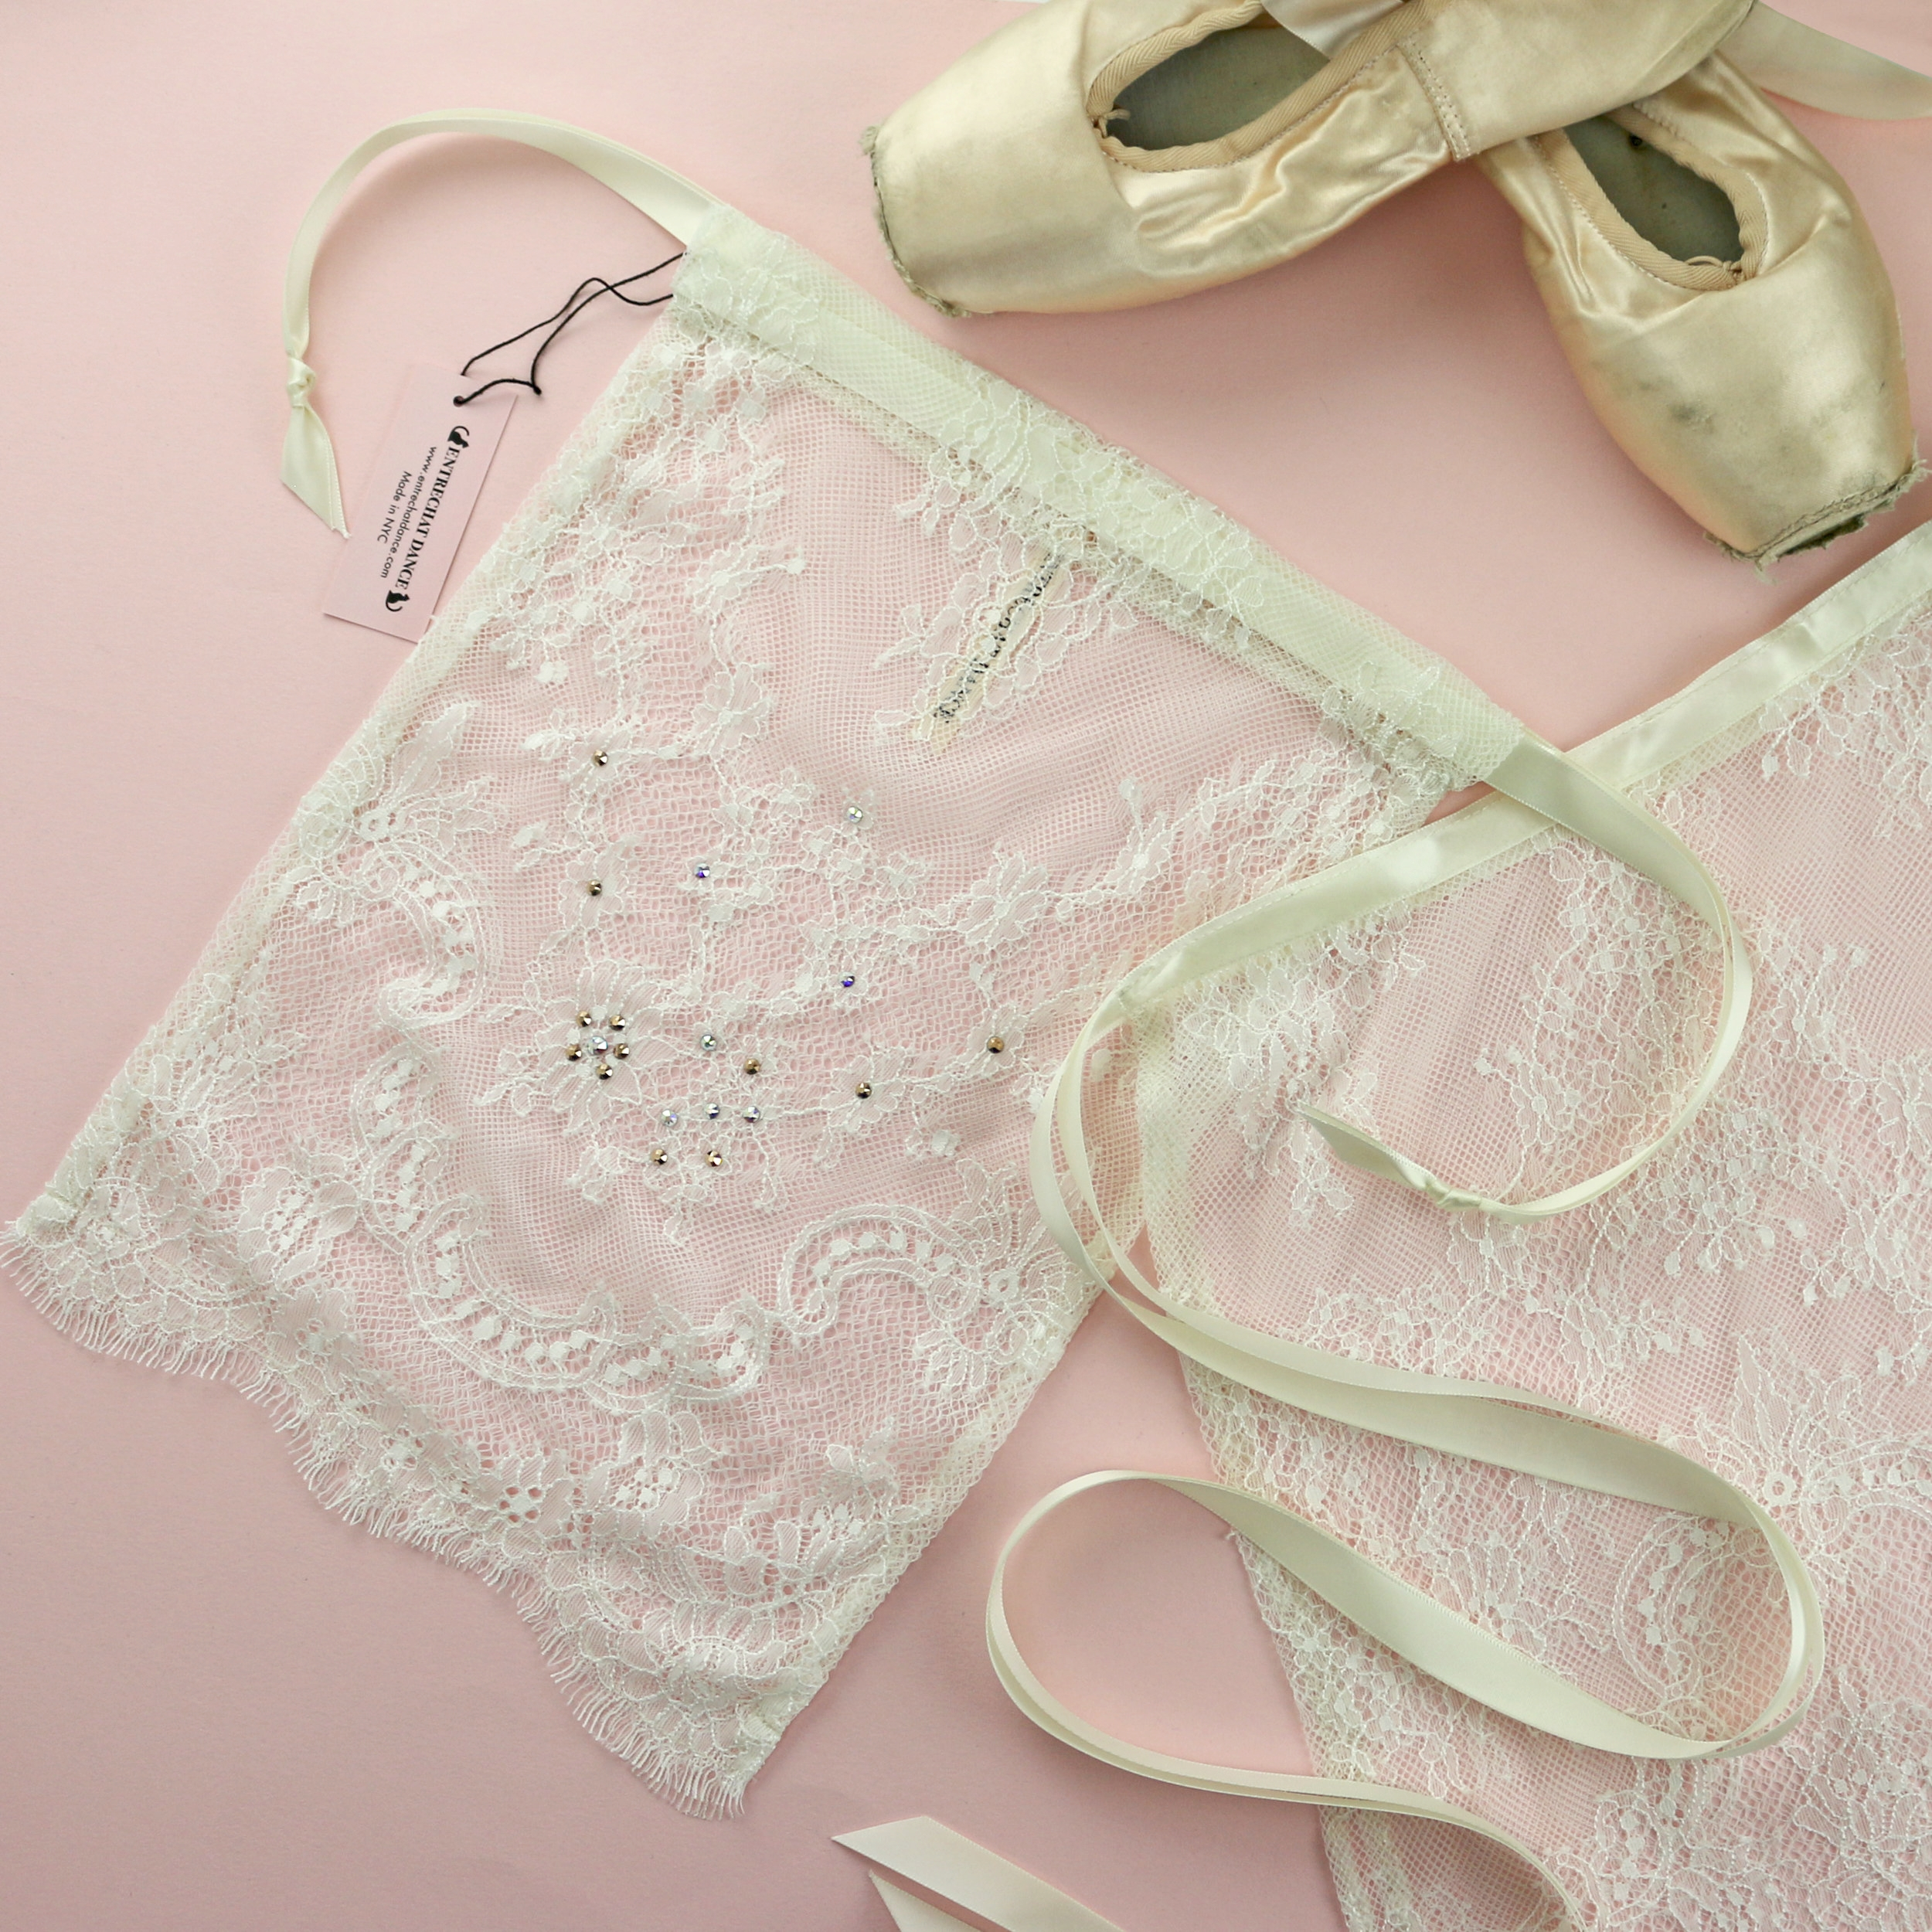 Scalloped Alexandra Lace Pointe Shoe Bag, embellished with genuine Swarovski® Crystals, makes a perfect pairing with our Alexandra Lace ballet wrap skirt.